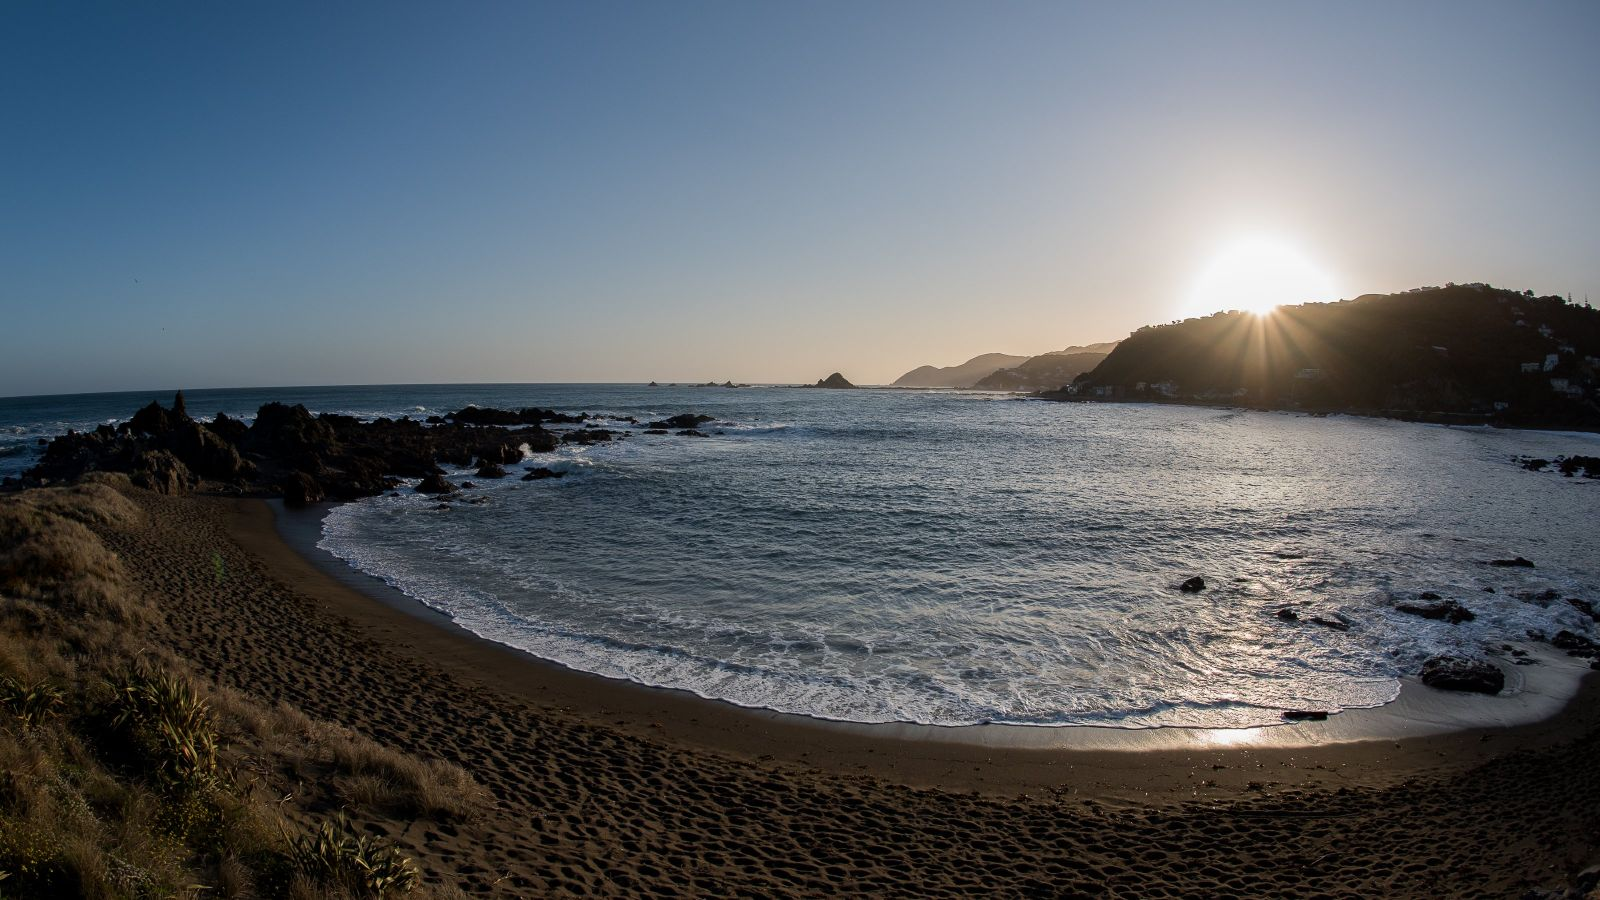 Sandy beach with rocks to the left going into the ocean, hills and sunrise in the distance. Clear blue sky